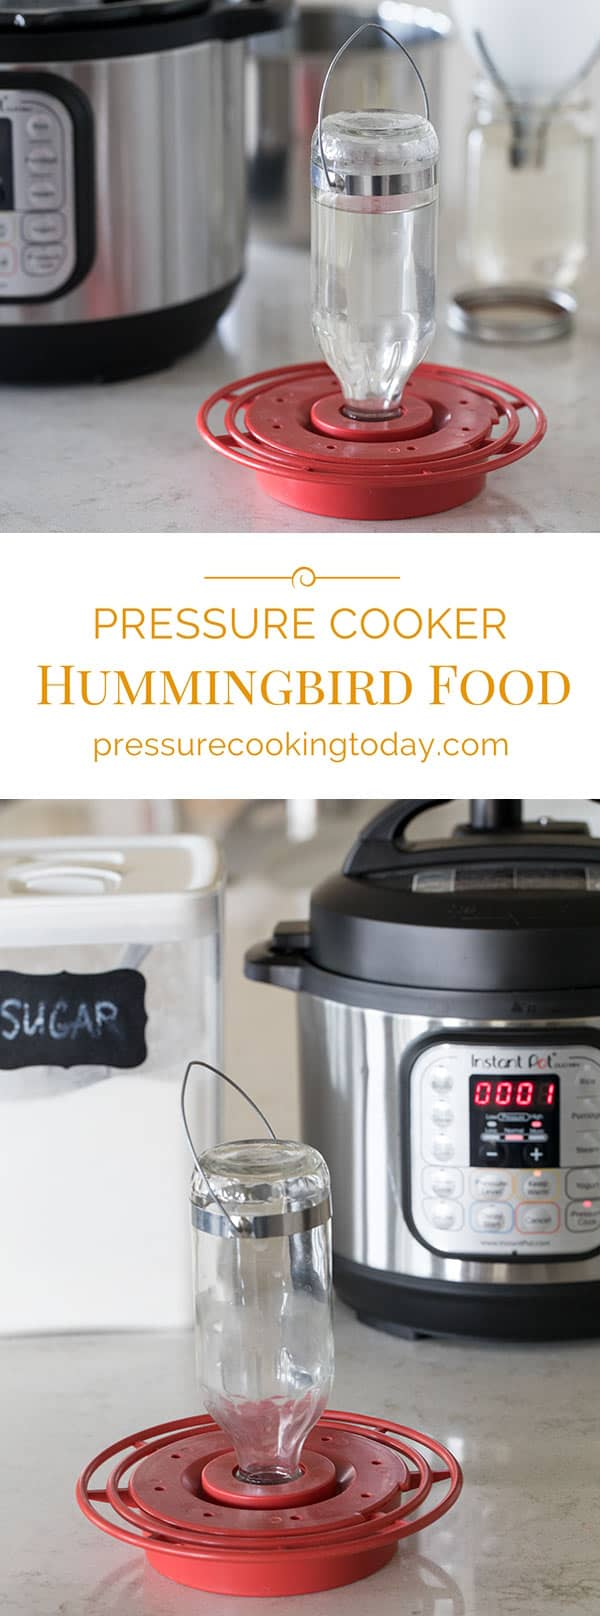 Hummingbird food is super easy to make, and making it in the pressure cooker is even easier.